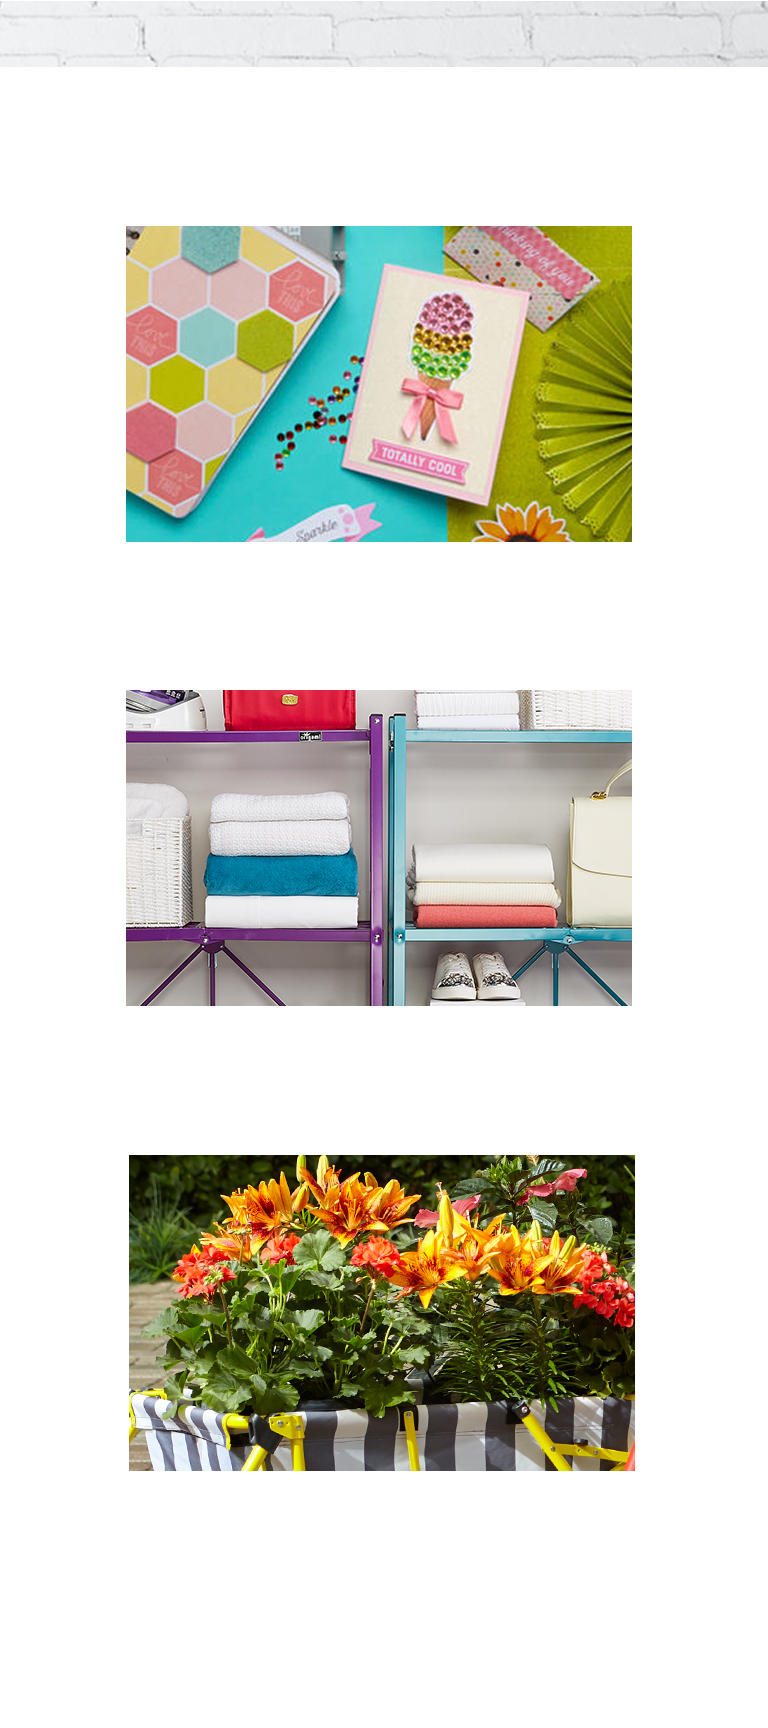 A picture of craft goods, a picture of organizational shelves, and a picture of planted flowers.